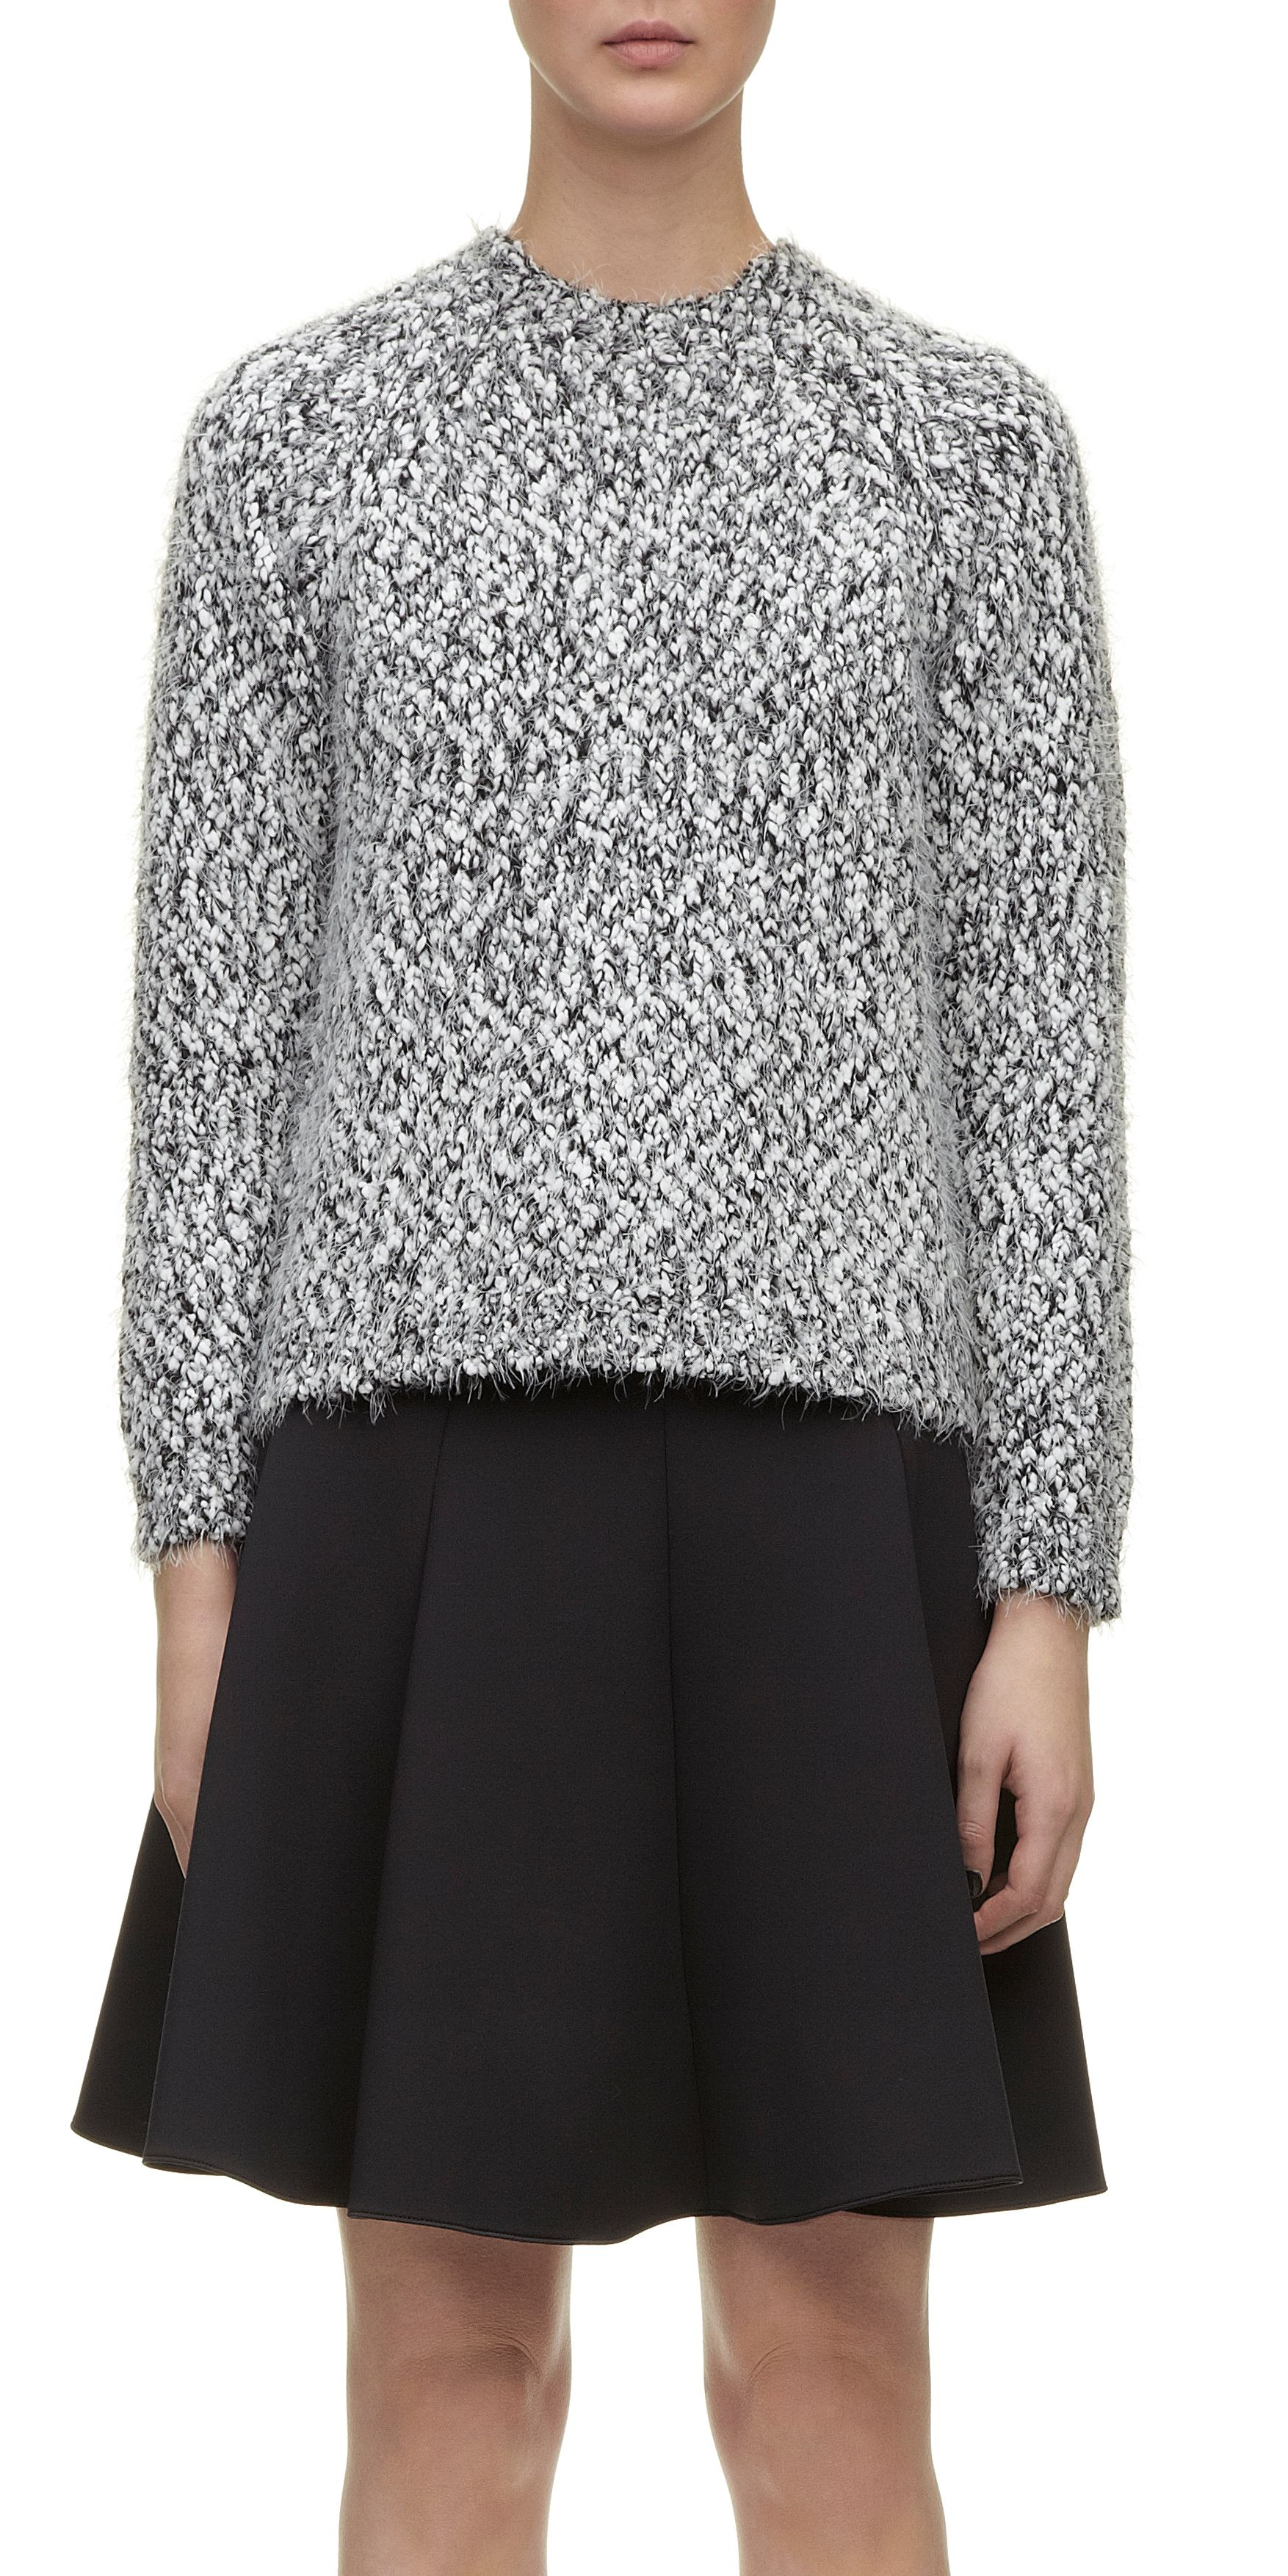 Assisi Monochrome Eyelash Knit Jumper